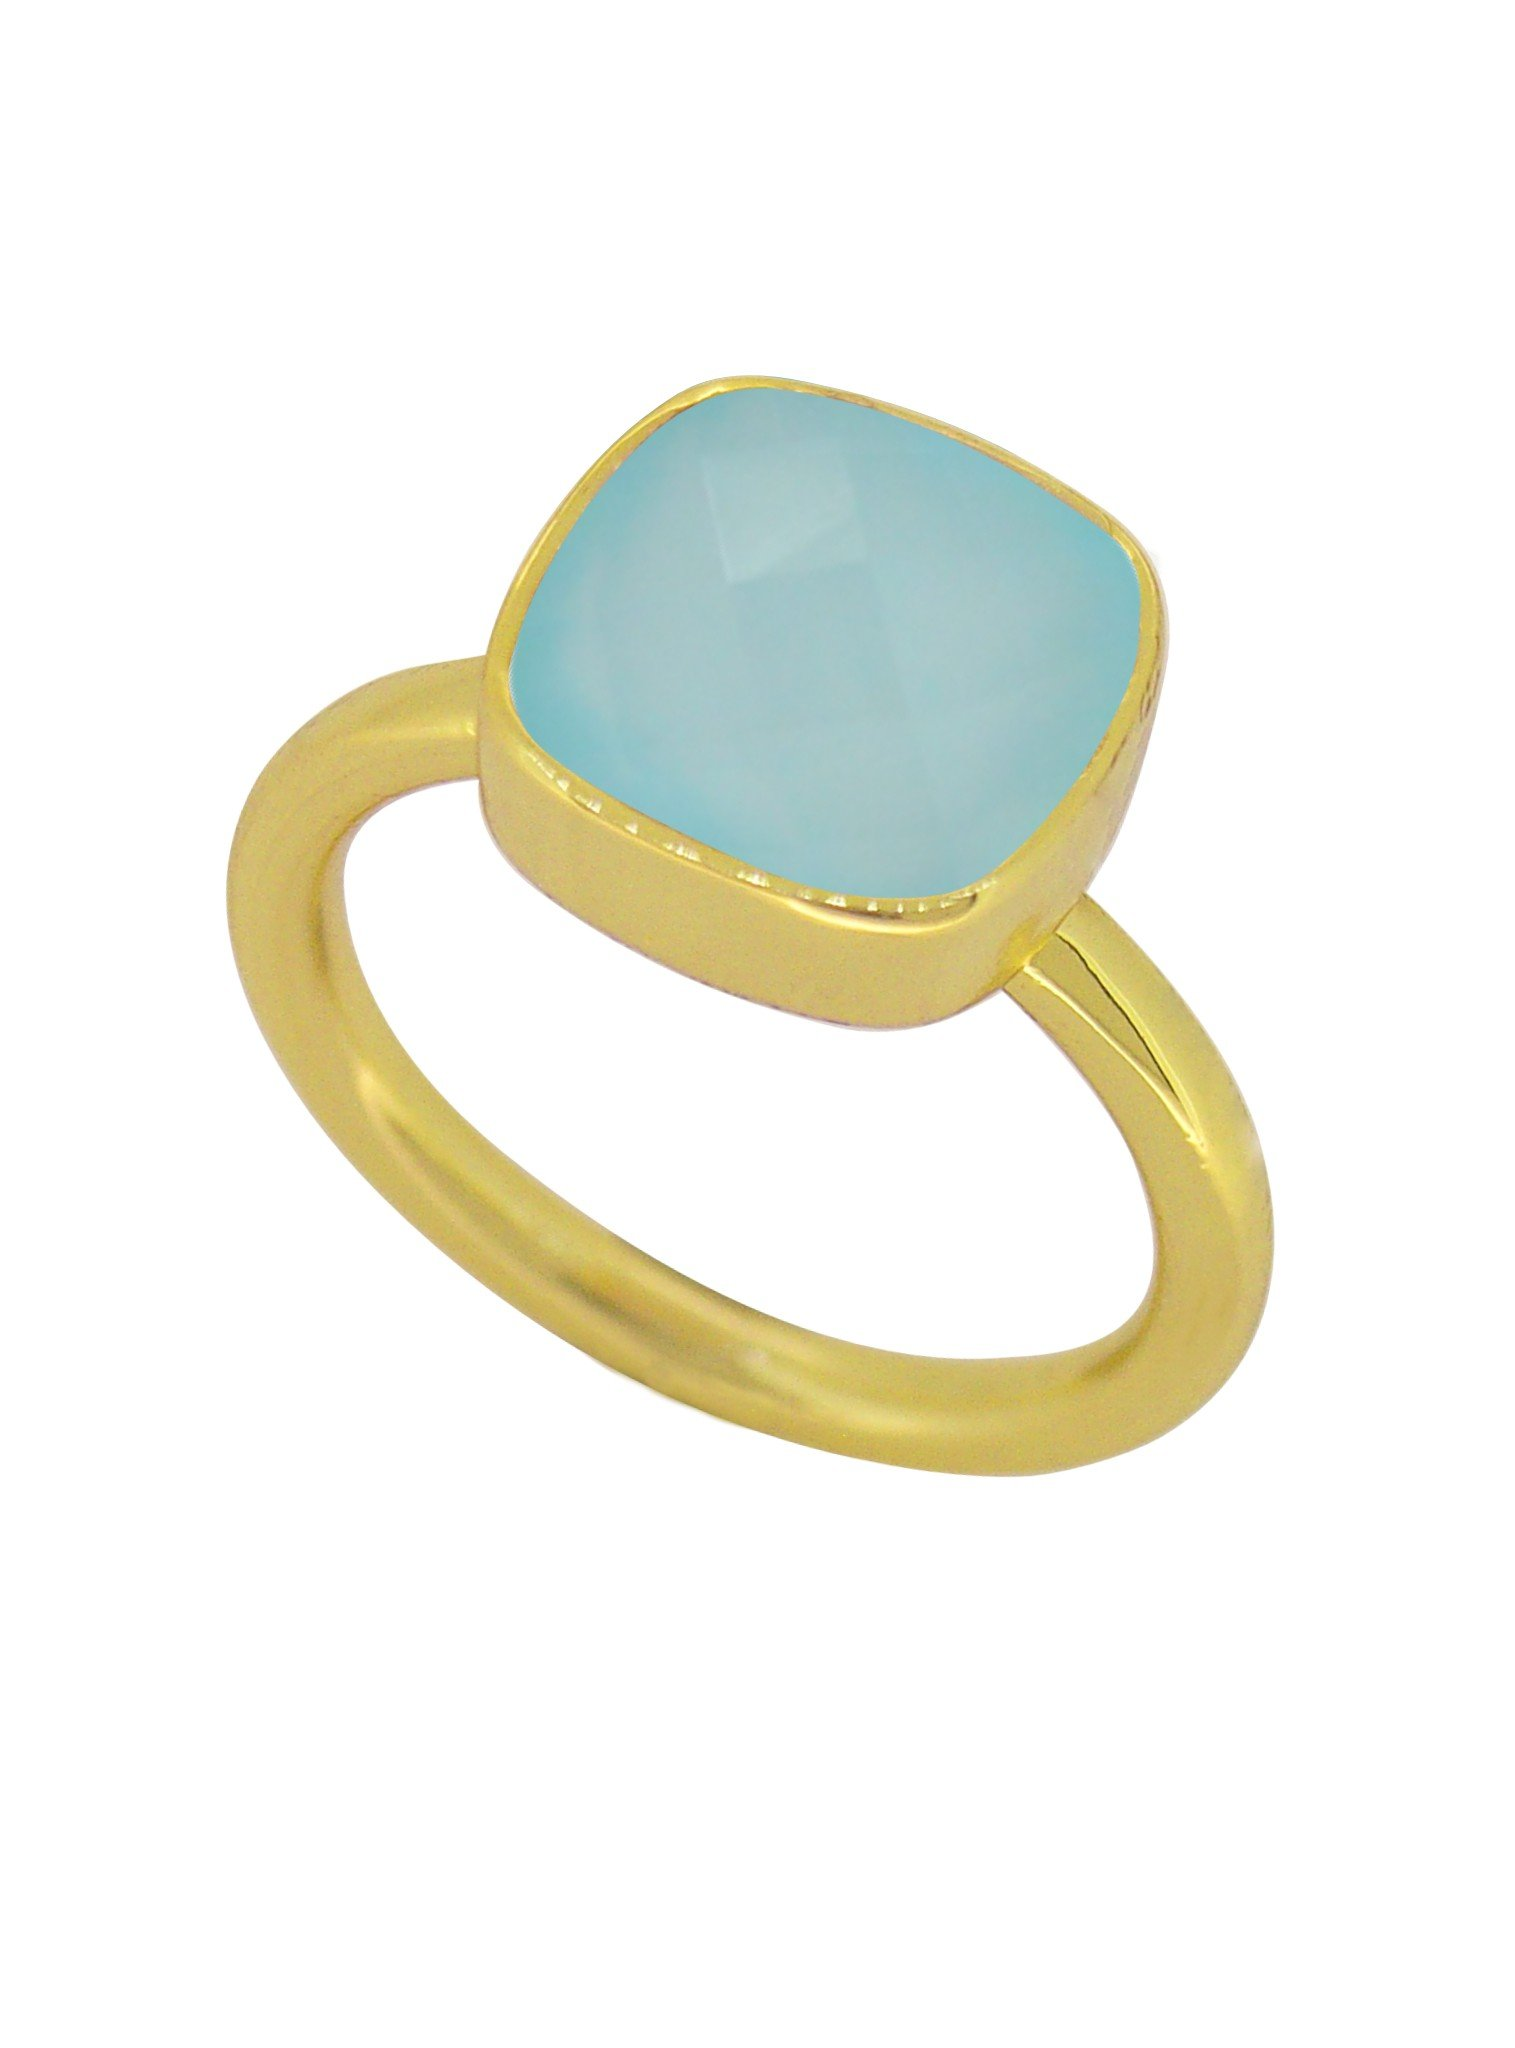 Indie Aqua Chalcedony Gemstone Ring in Gold